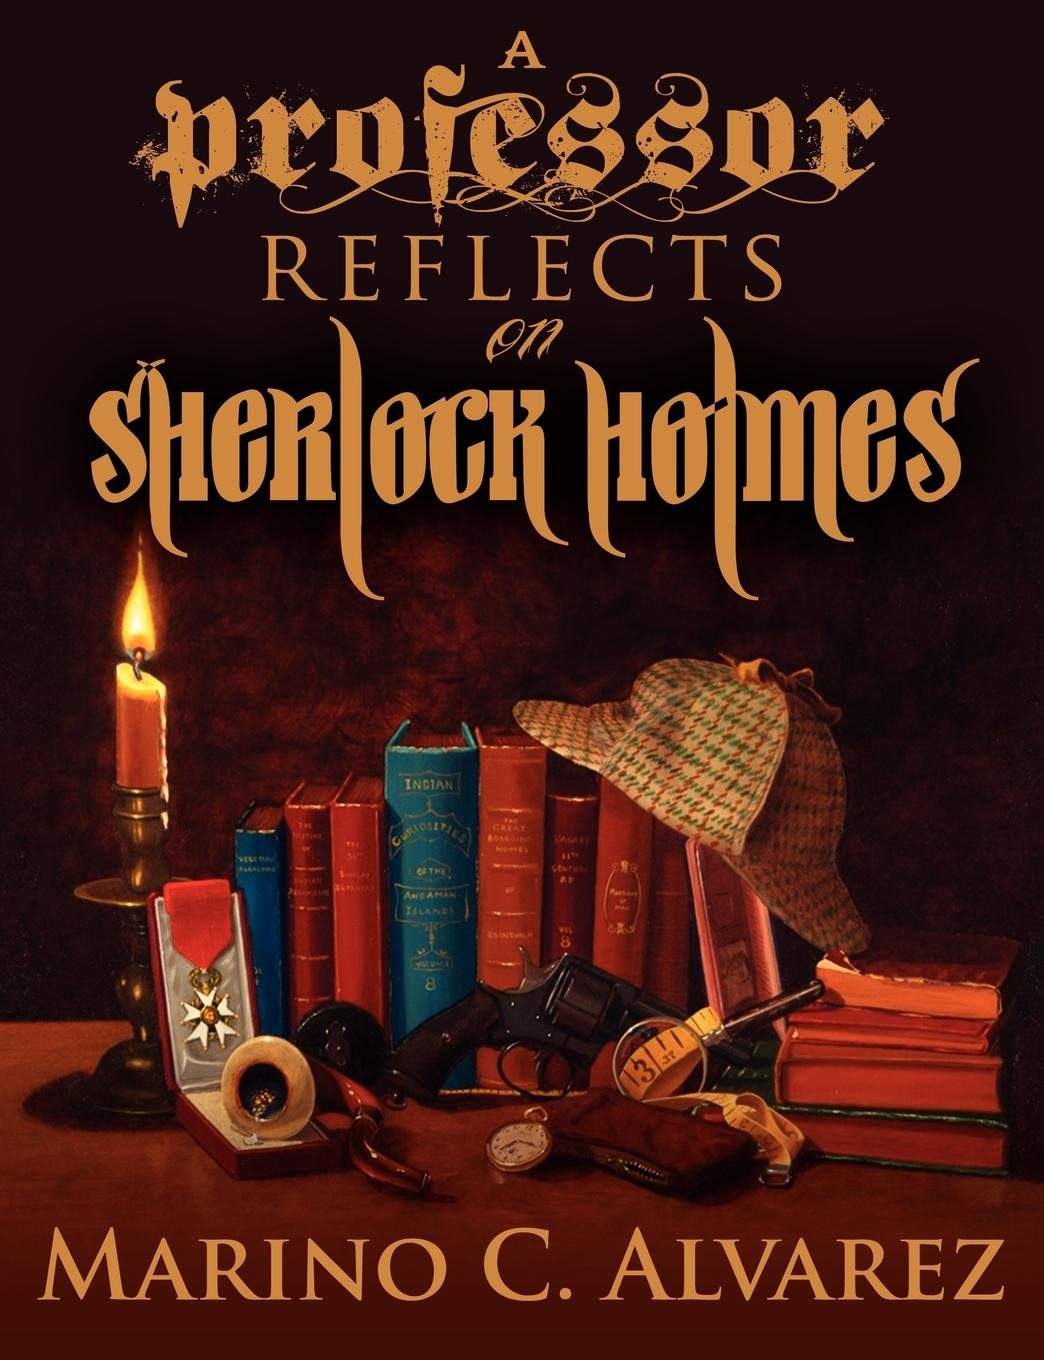 Marino C. Alvarez A Professor Reflects on Sherlock Holmes biographical writings s